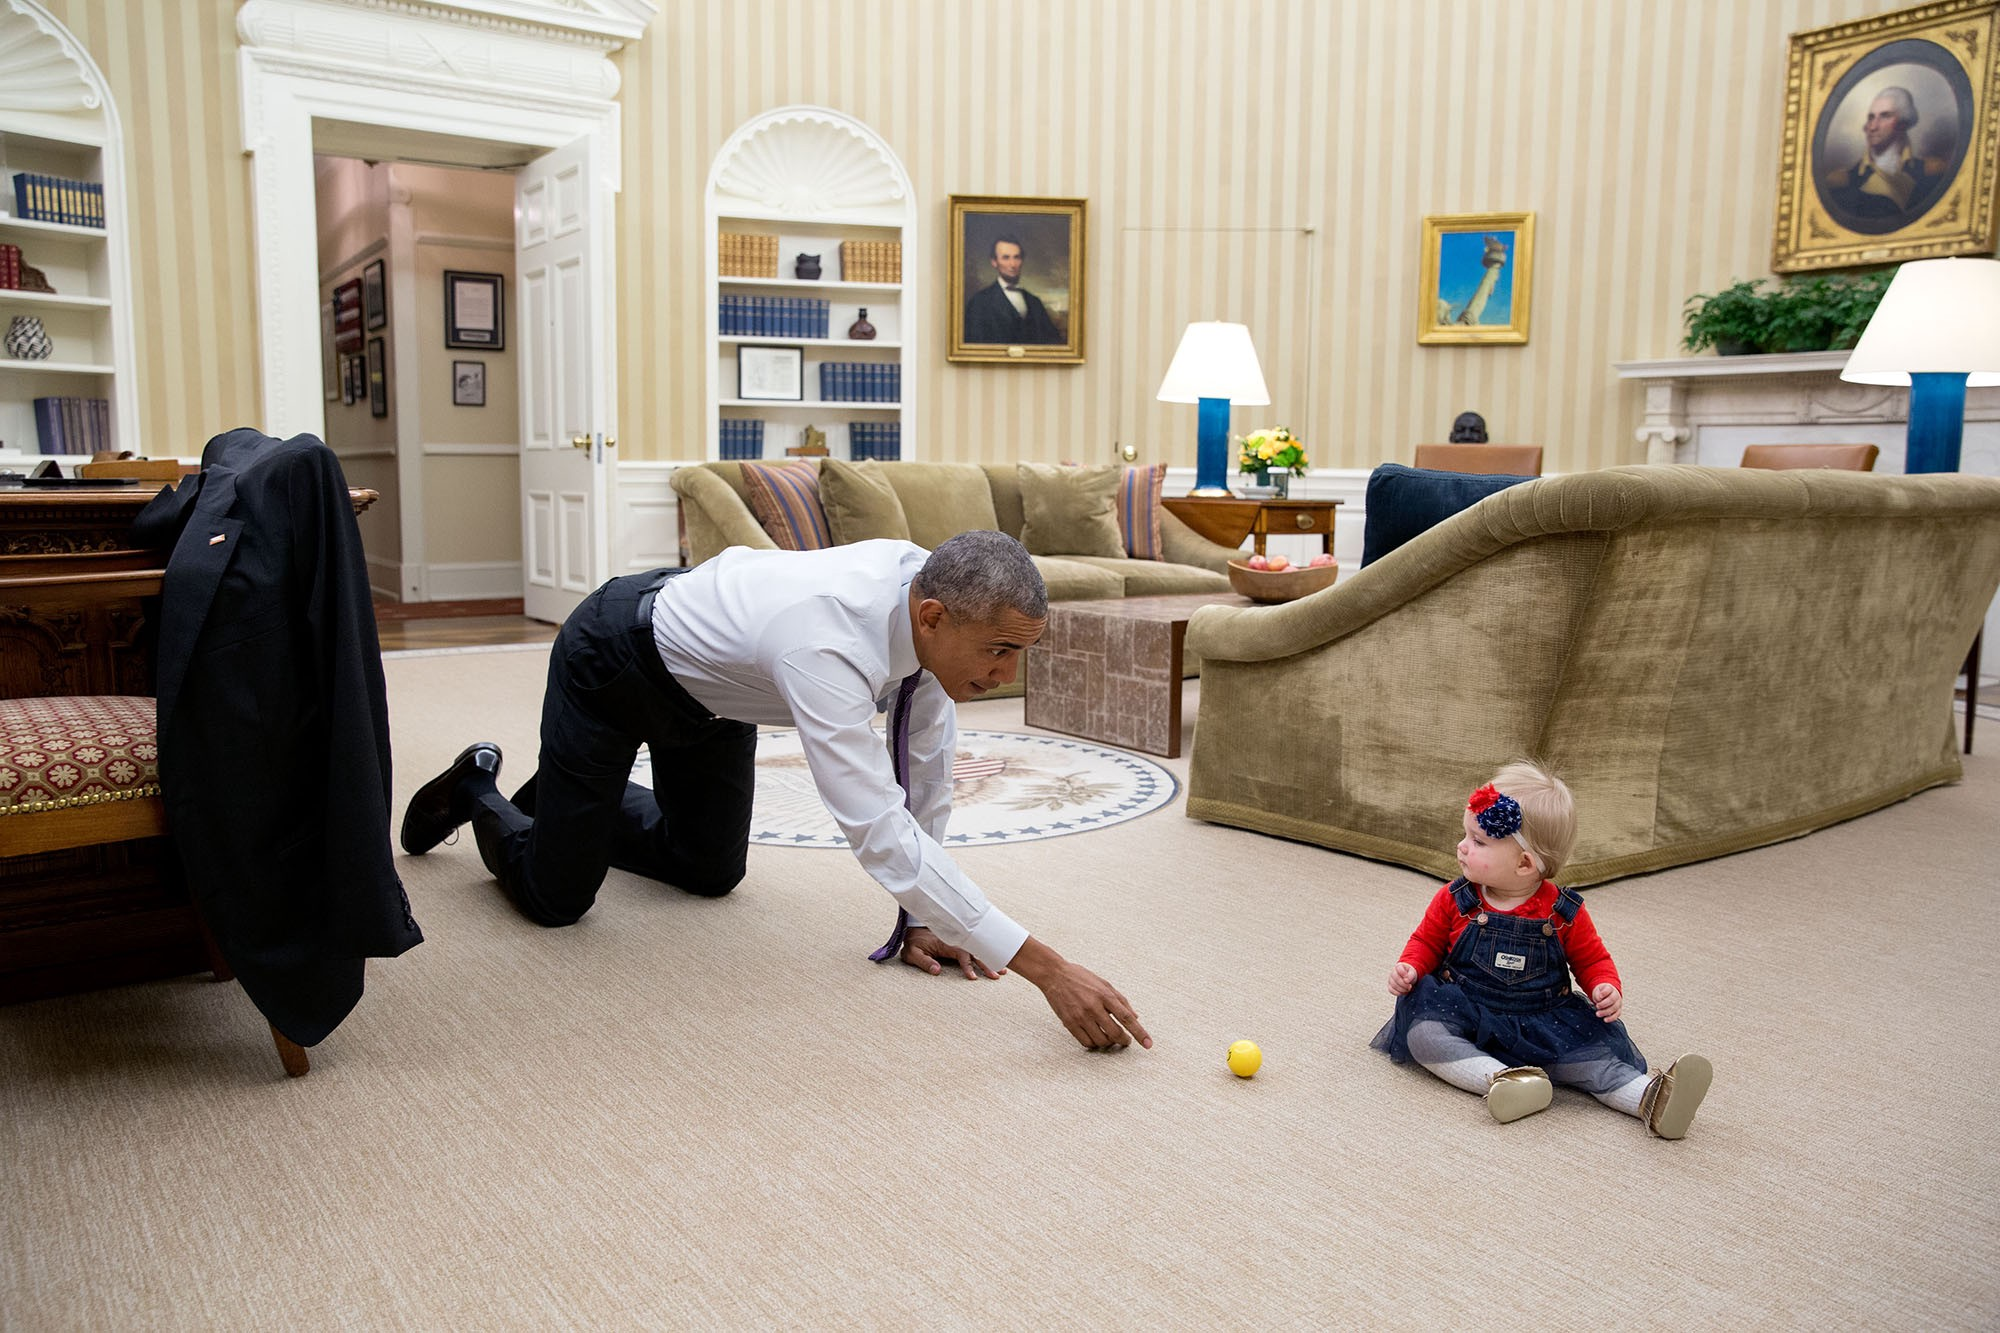 "Nov. 8, 2016 ""The President had just walked in from the dining room and sitting on the floor in the Oval Office was Evelyn 'Evie' Cushman, daughter of Chase Cushman, Director of Scheduling and Advance. He immediately dropped down to his hands and knees and began tossing a ball back and forth with her."" (Official White House Photo by Pete Souza)"